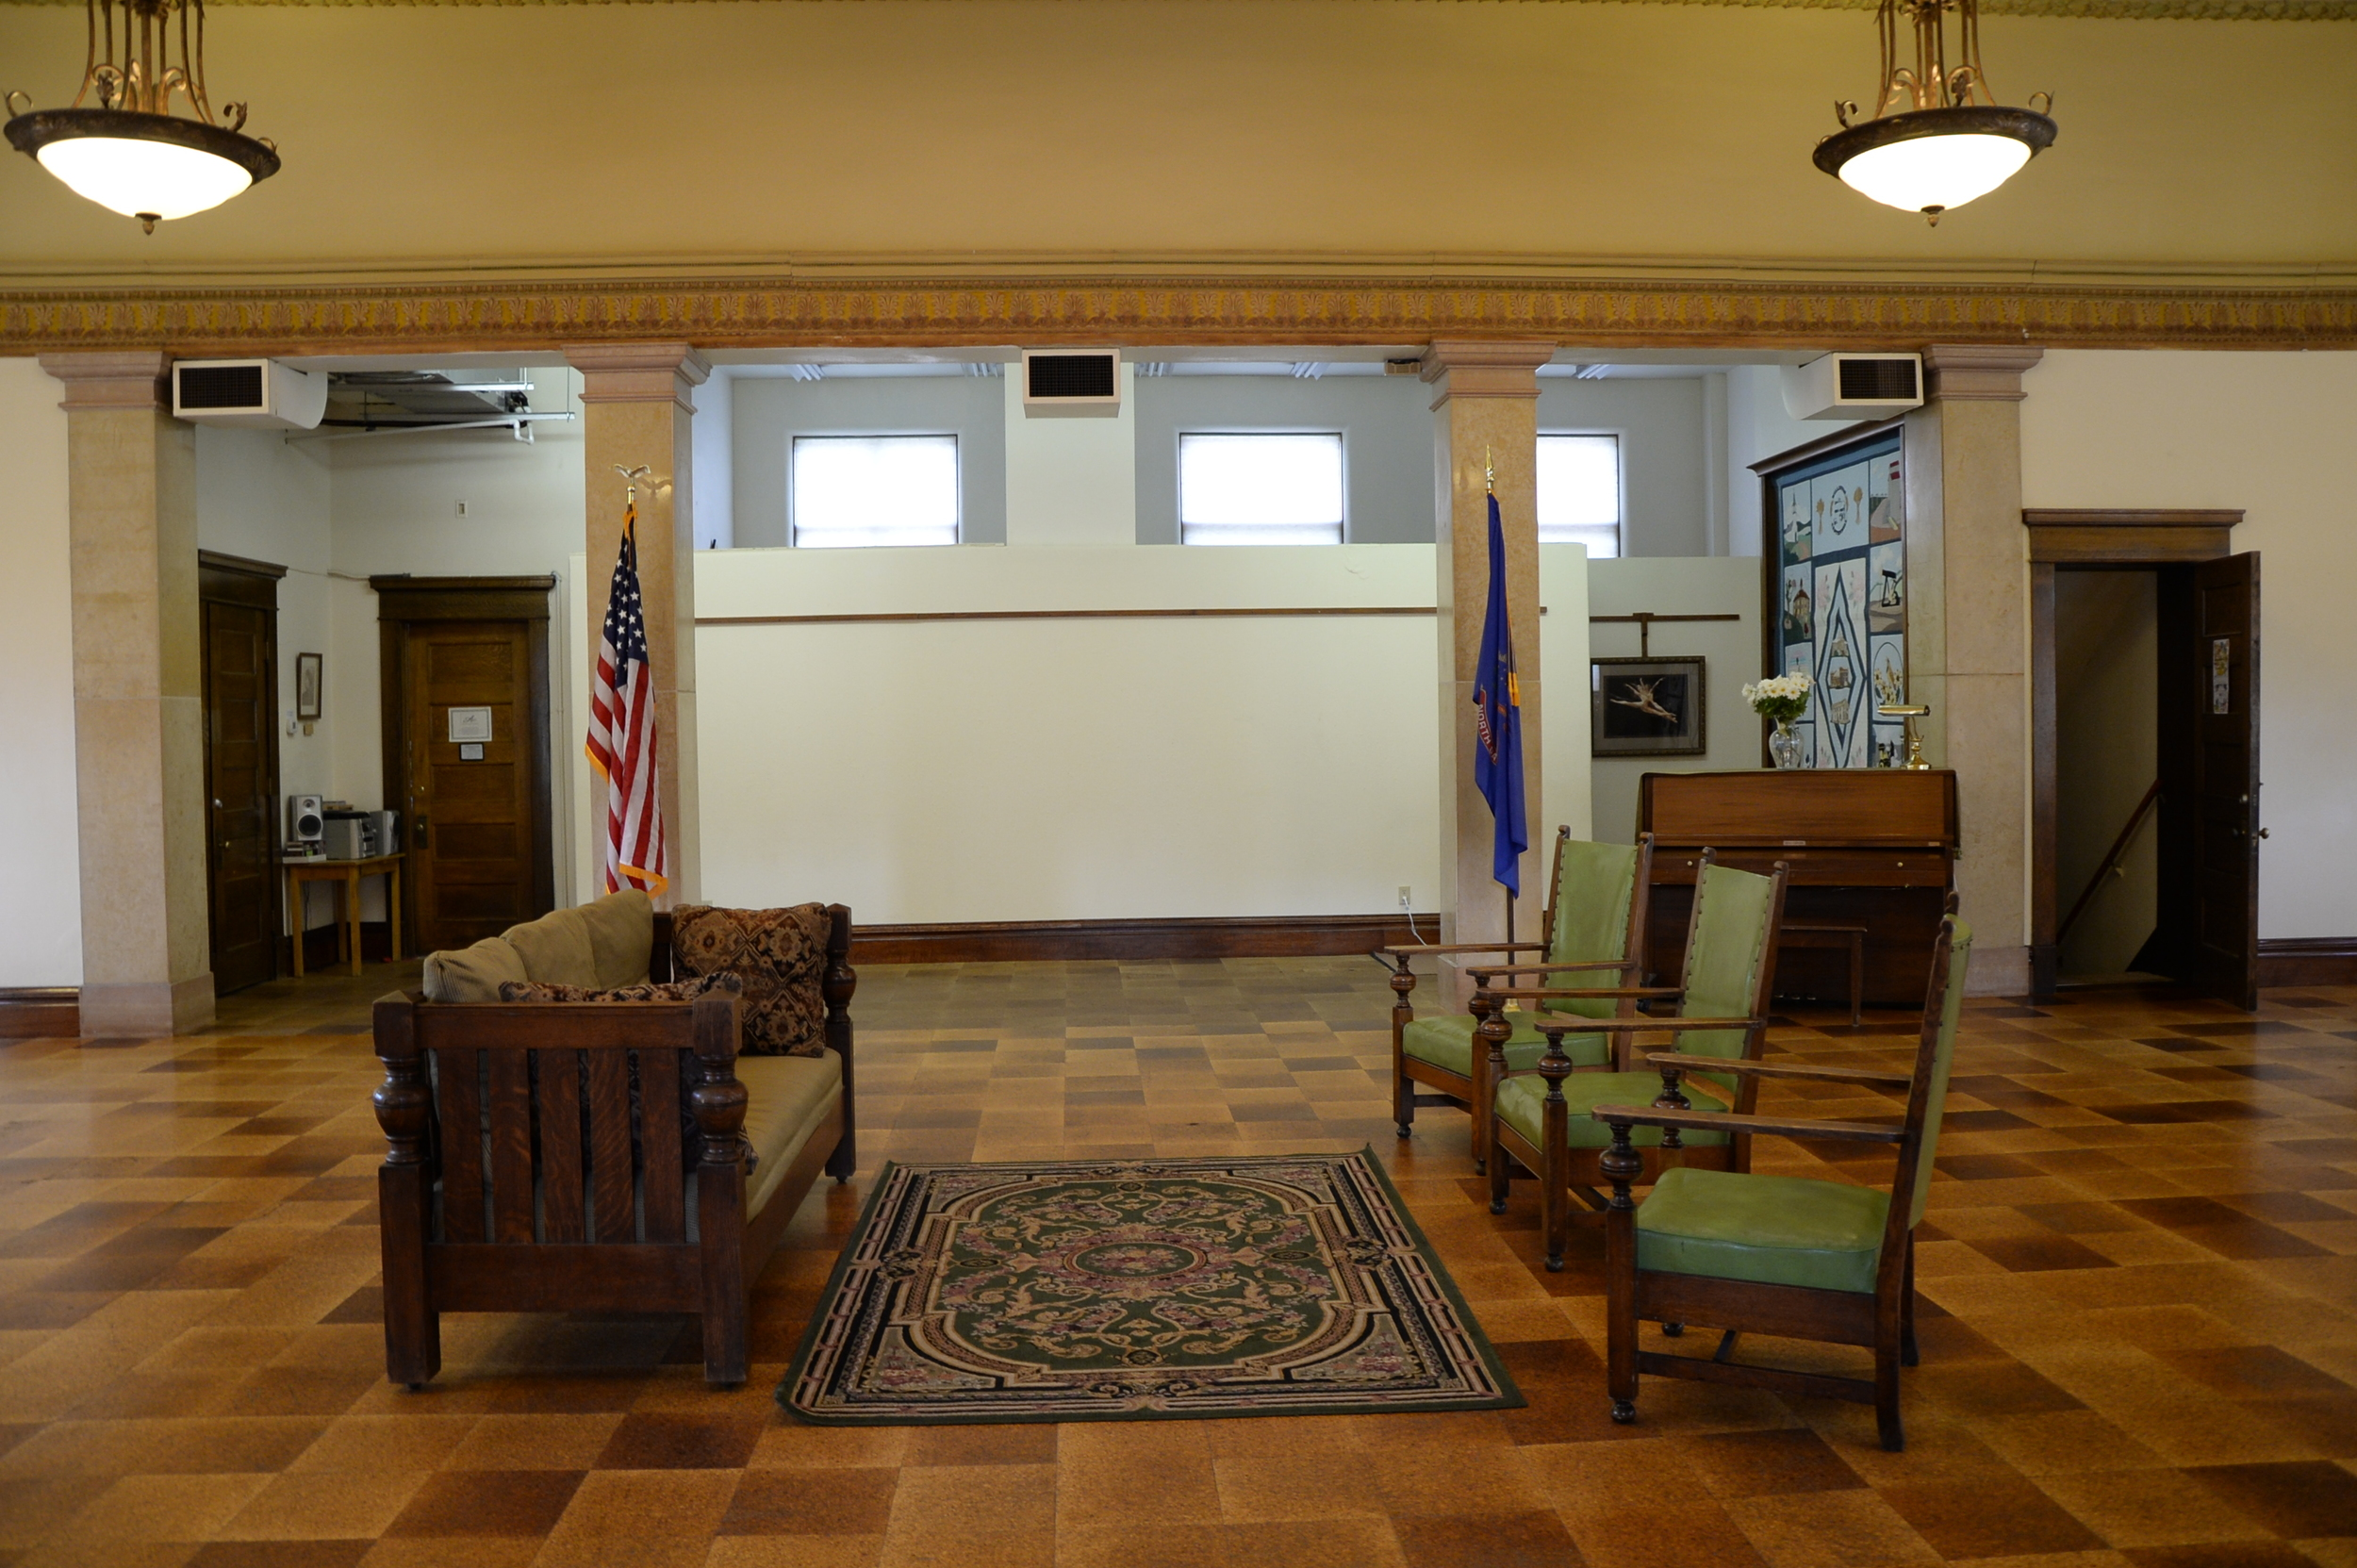 Re-surfacing of the main gallery floor, replacement flooring in damaged area by office, and new cork flooring in the kitchenette completed July 2015. Funding provided by Williston CVB grant.